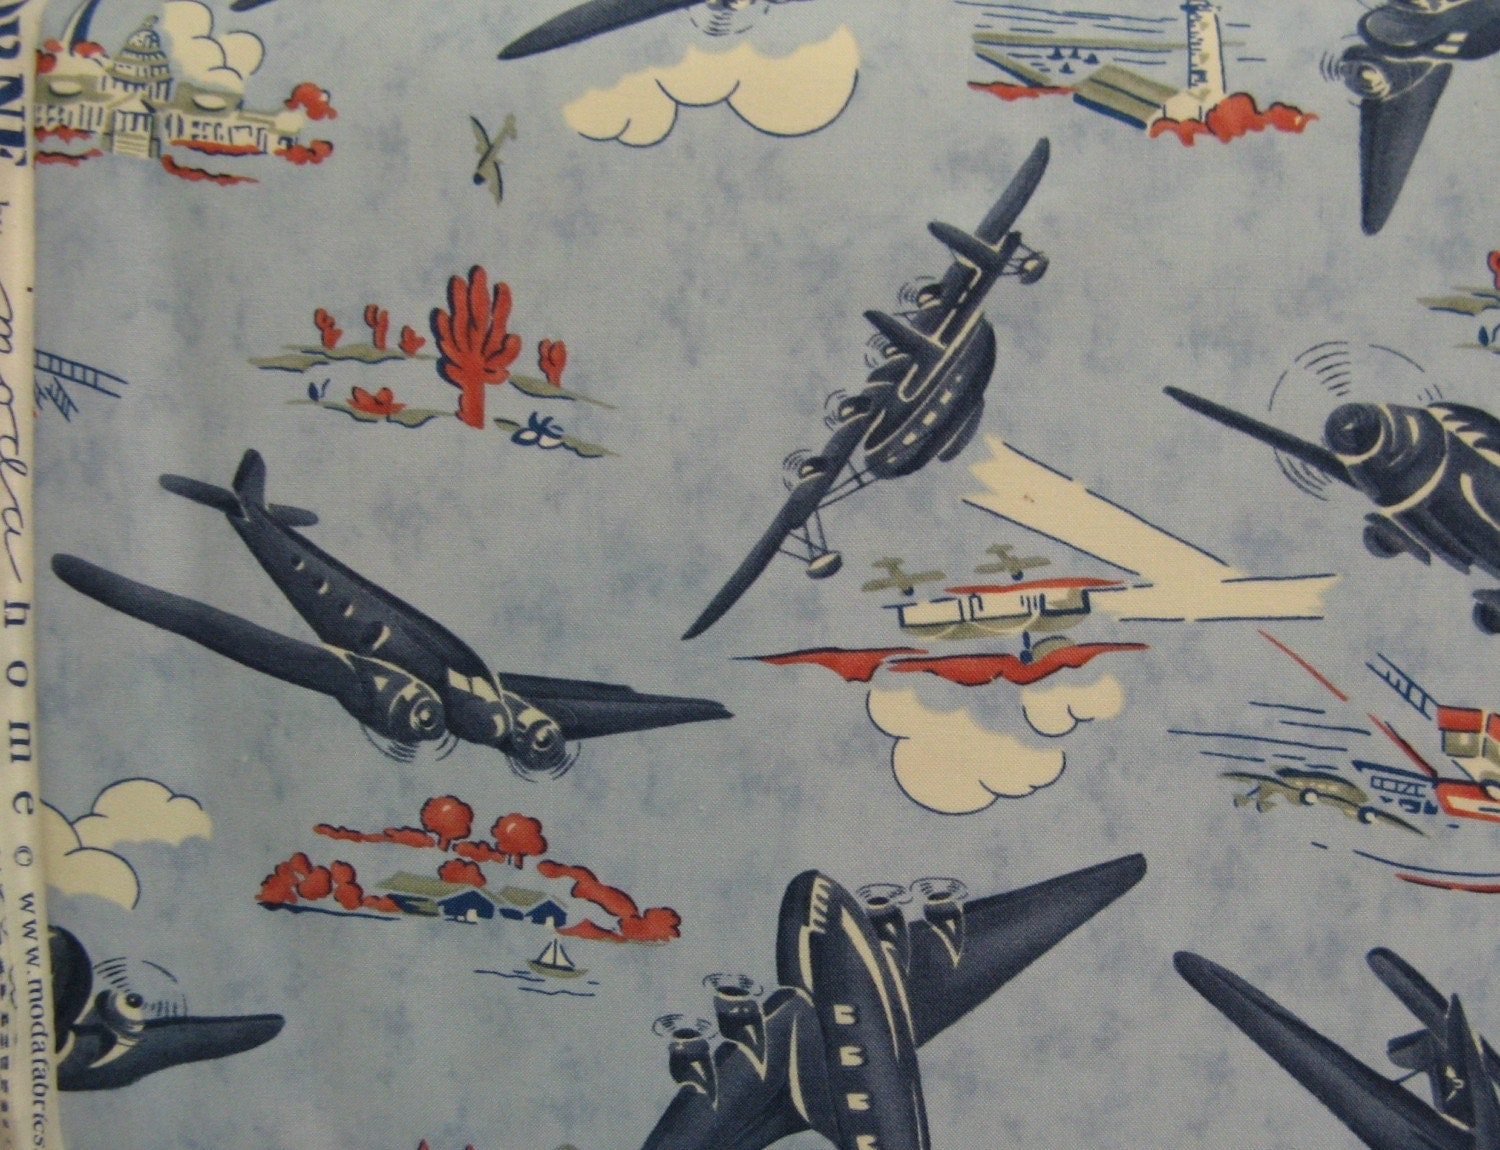 Airborne airplane fabric by moda home yard for Airplane fabric by the yard